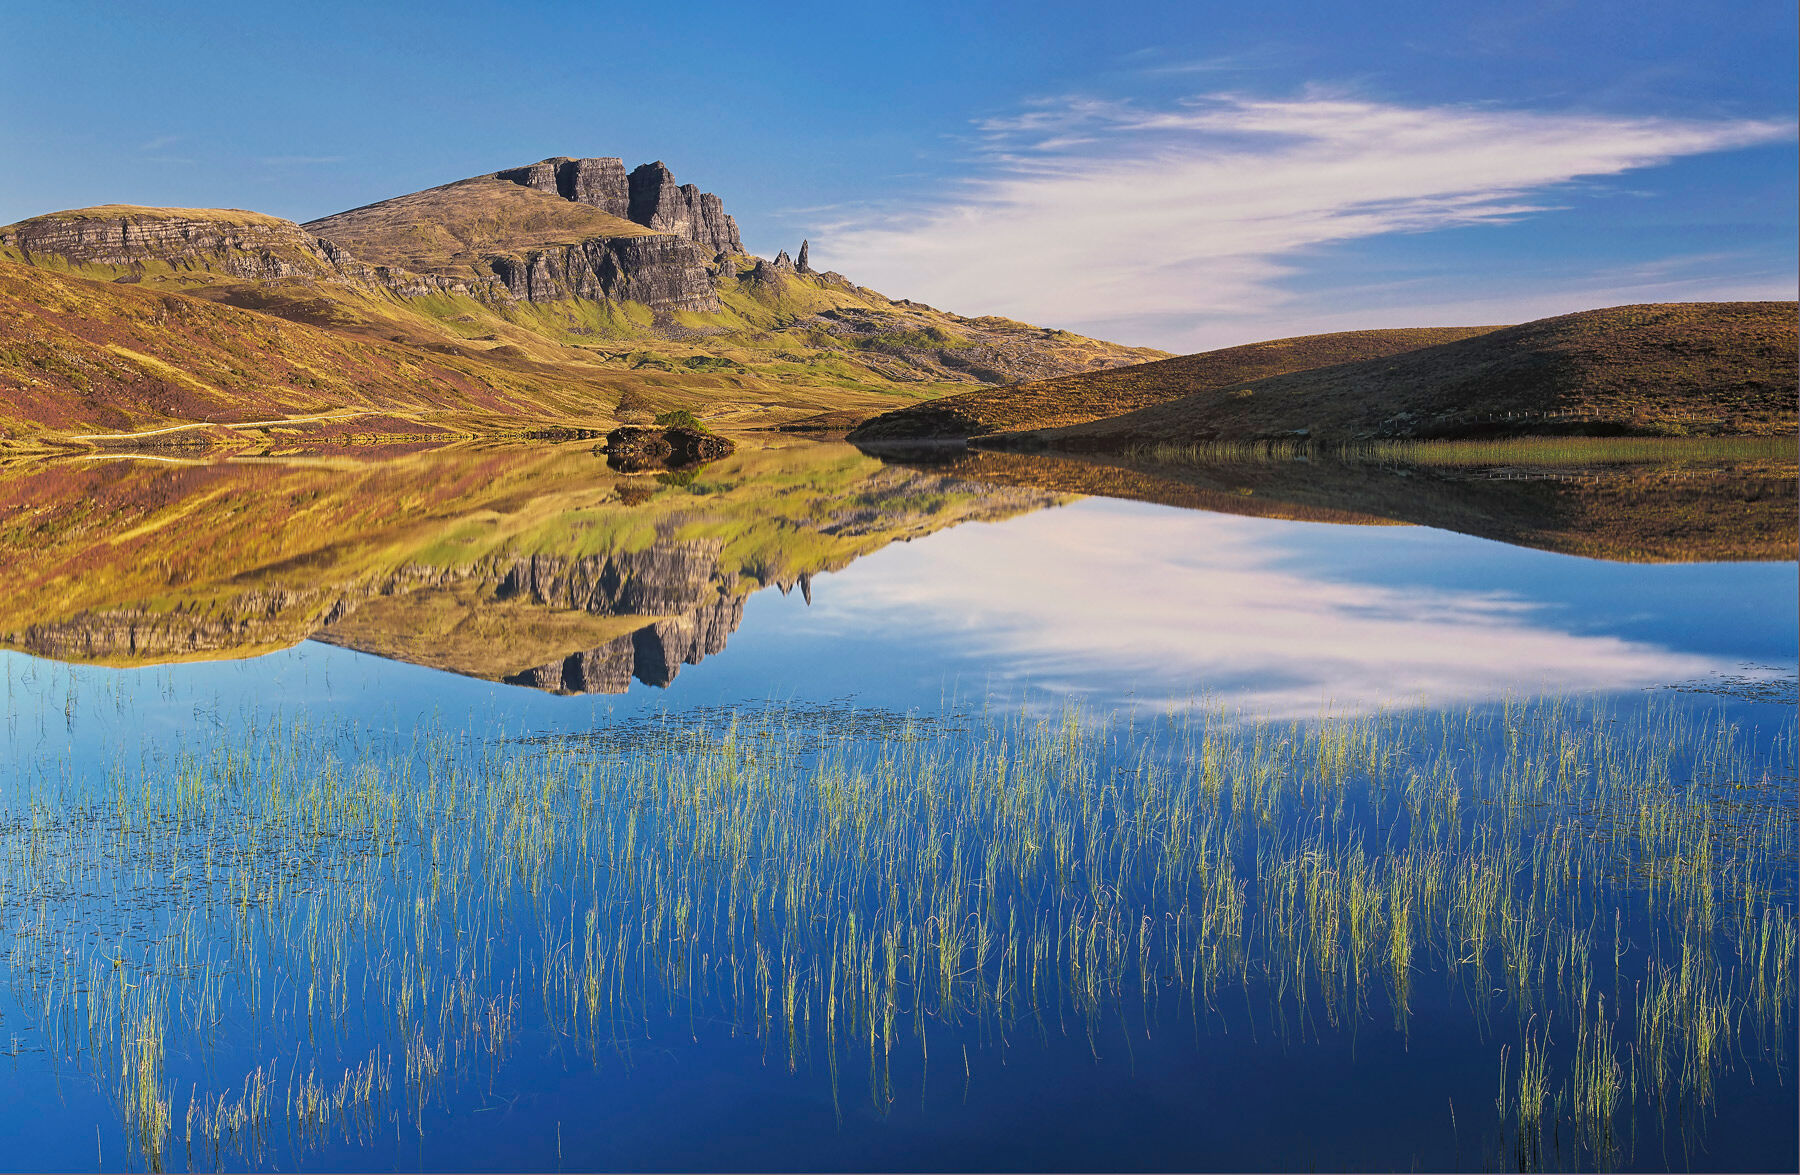 Sublime was the only word to describe the perfect morning and stunning reflection that formed over a reed bed at the southern...